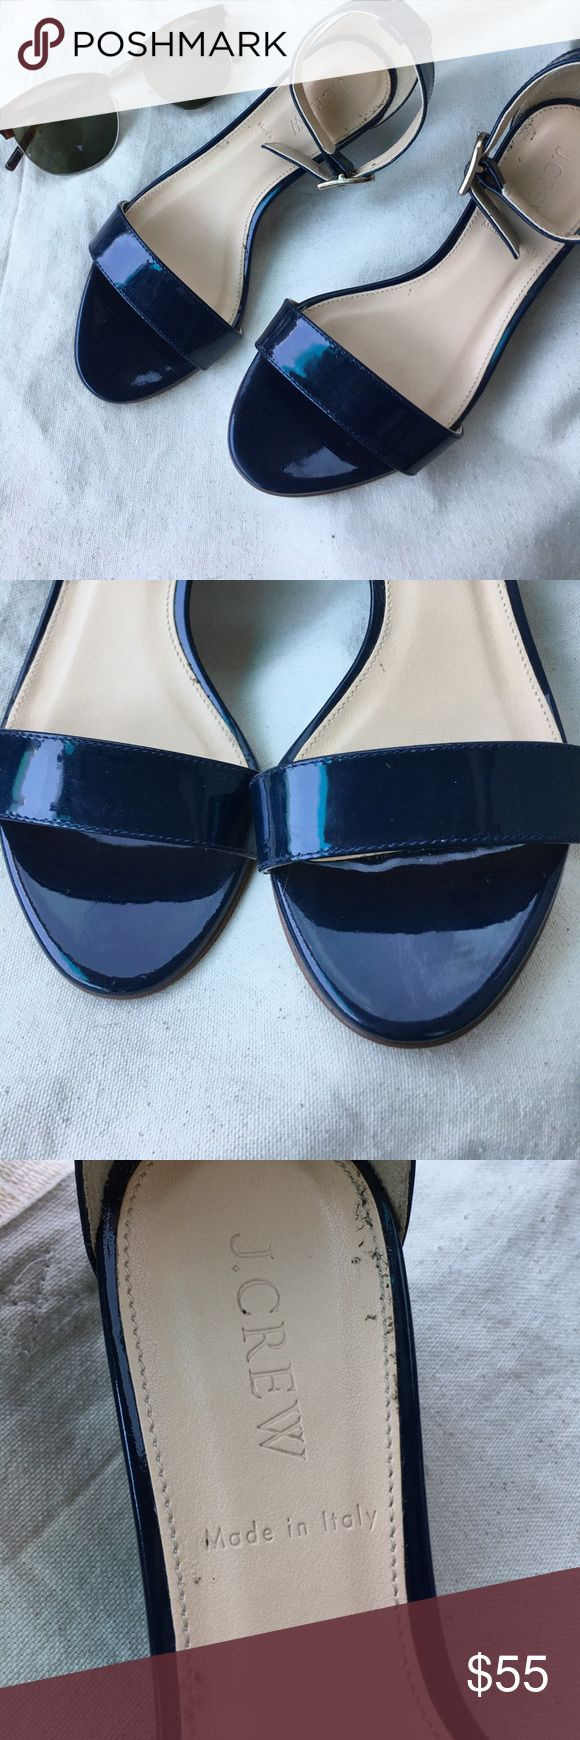 """J. Crew Lillian Patent Leather Navy Wedge Sandal Super cute preloved """"Lillian"""" low wedge sandal. Great condition with some wear to bottom soles and some wear inside footbed. Beautiful navy leather with silver buckles. J. Crew Shoes Wedges"""